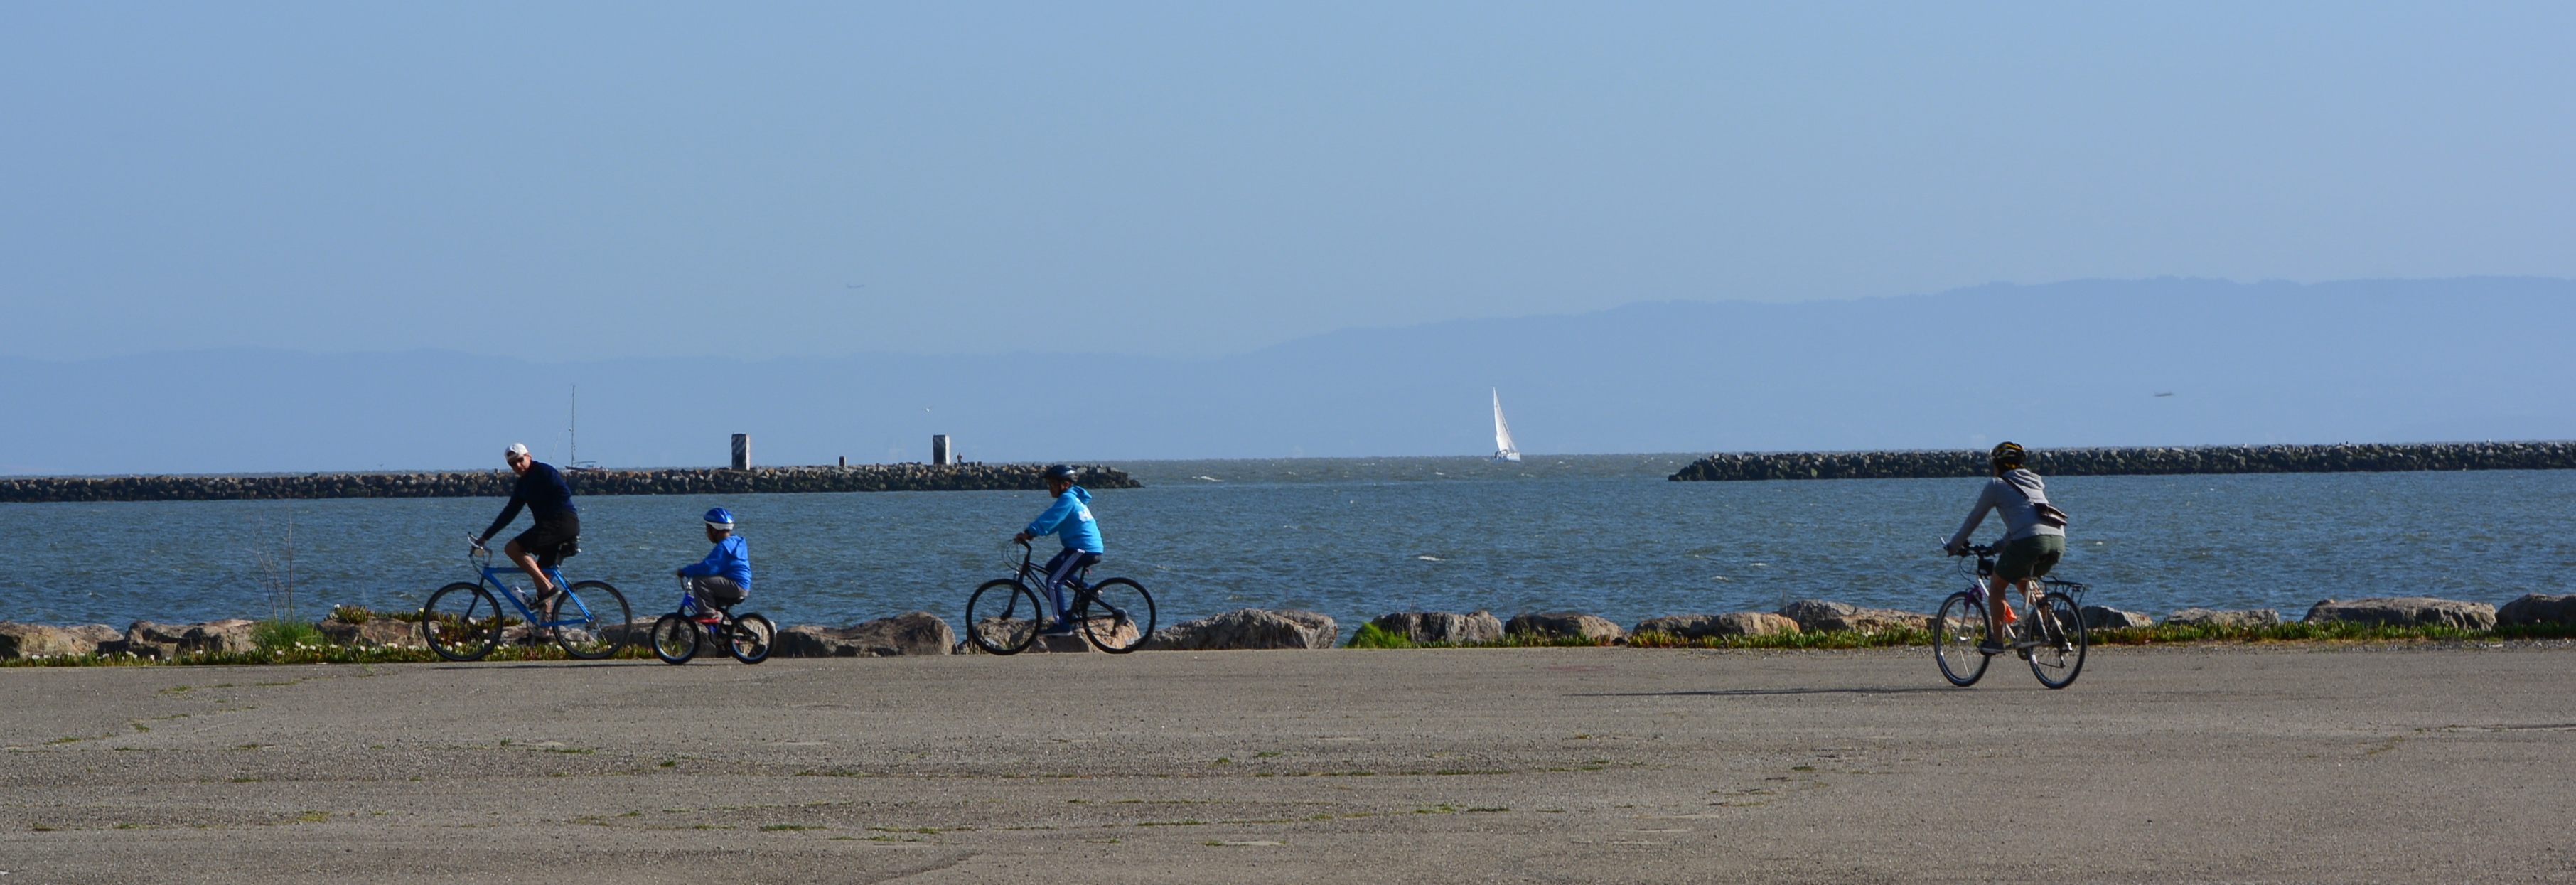 Family bicycling to the shoreline on west side of Seaplane Lagoon.